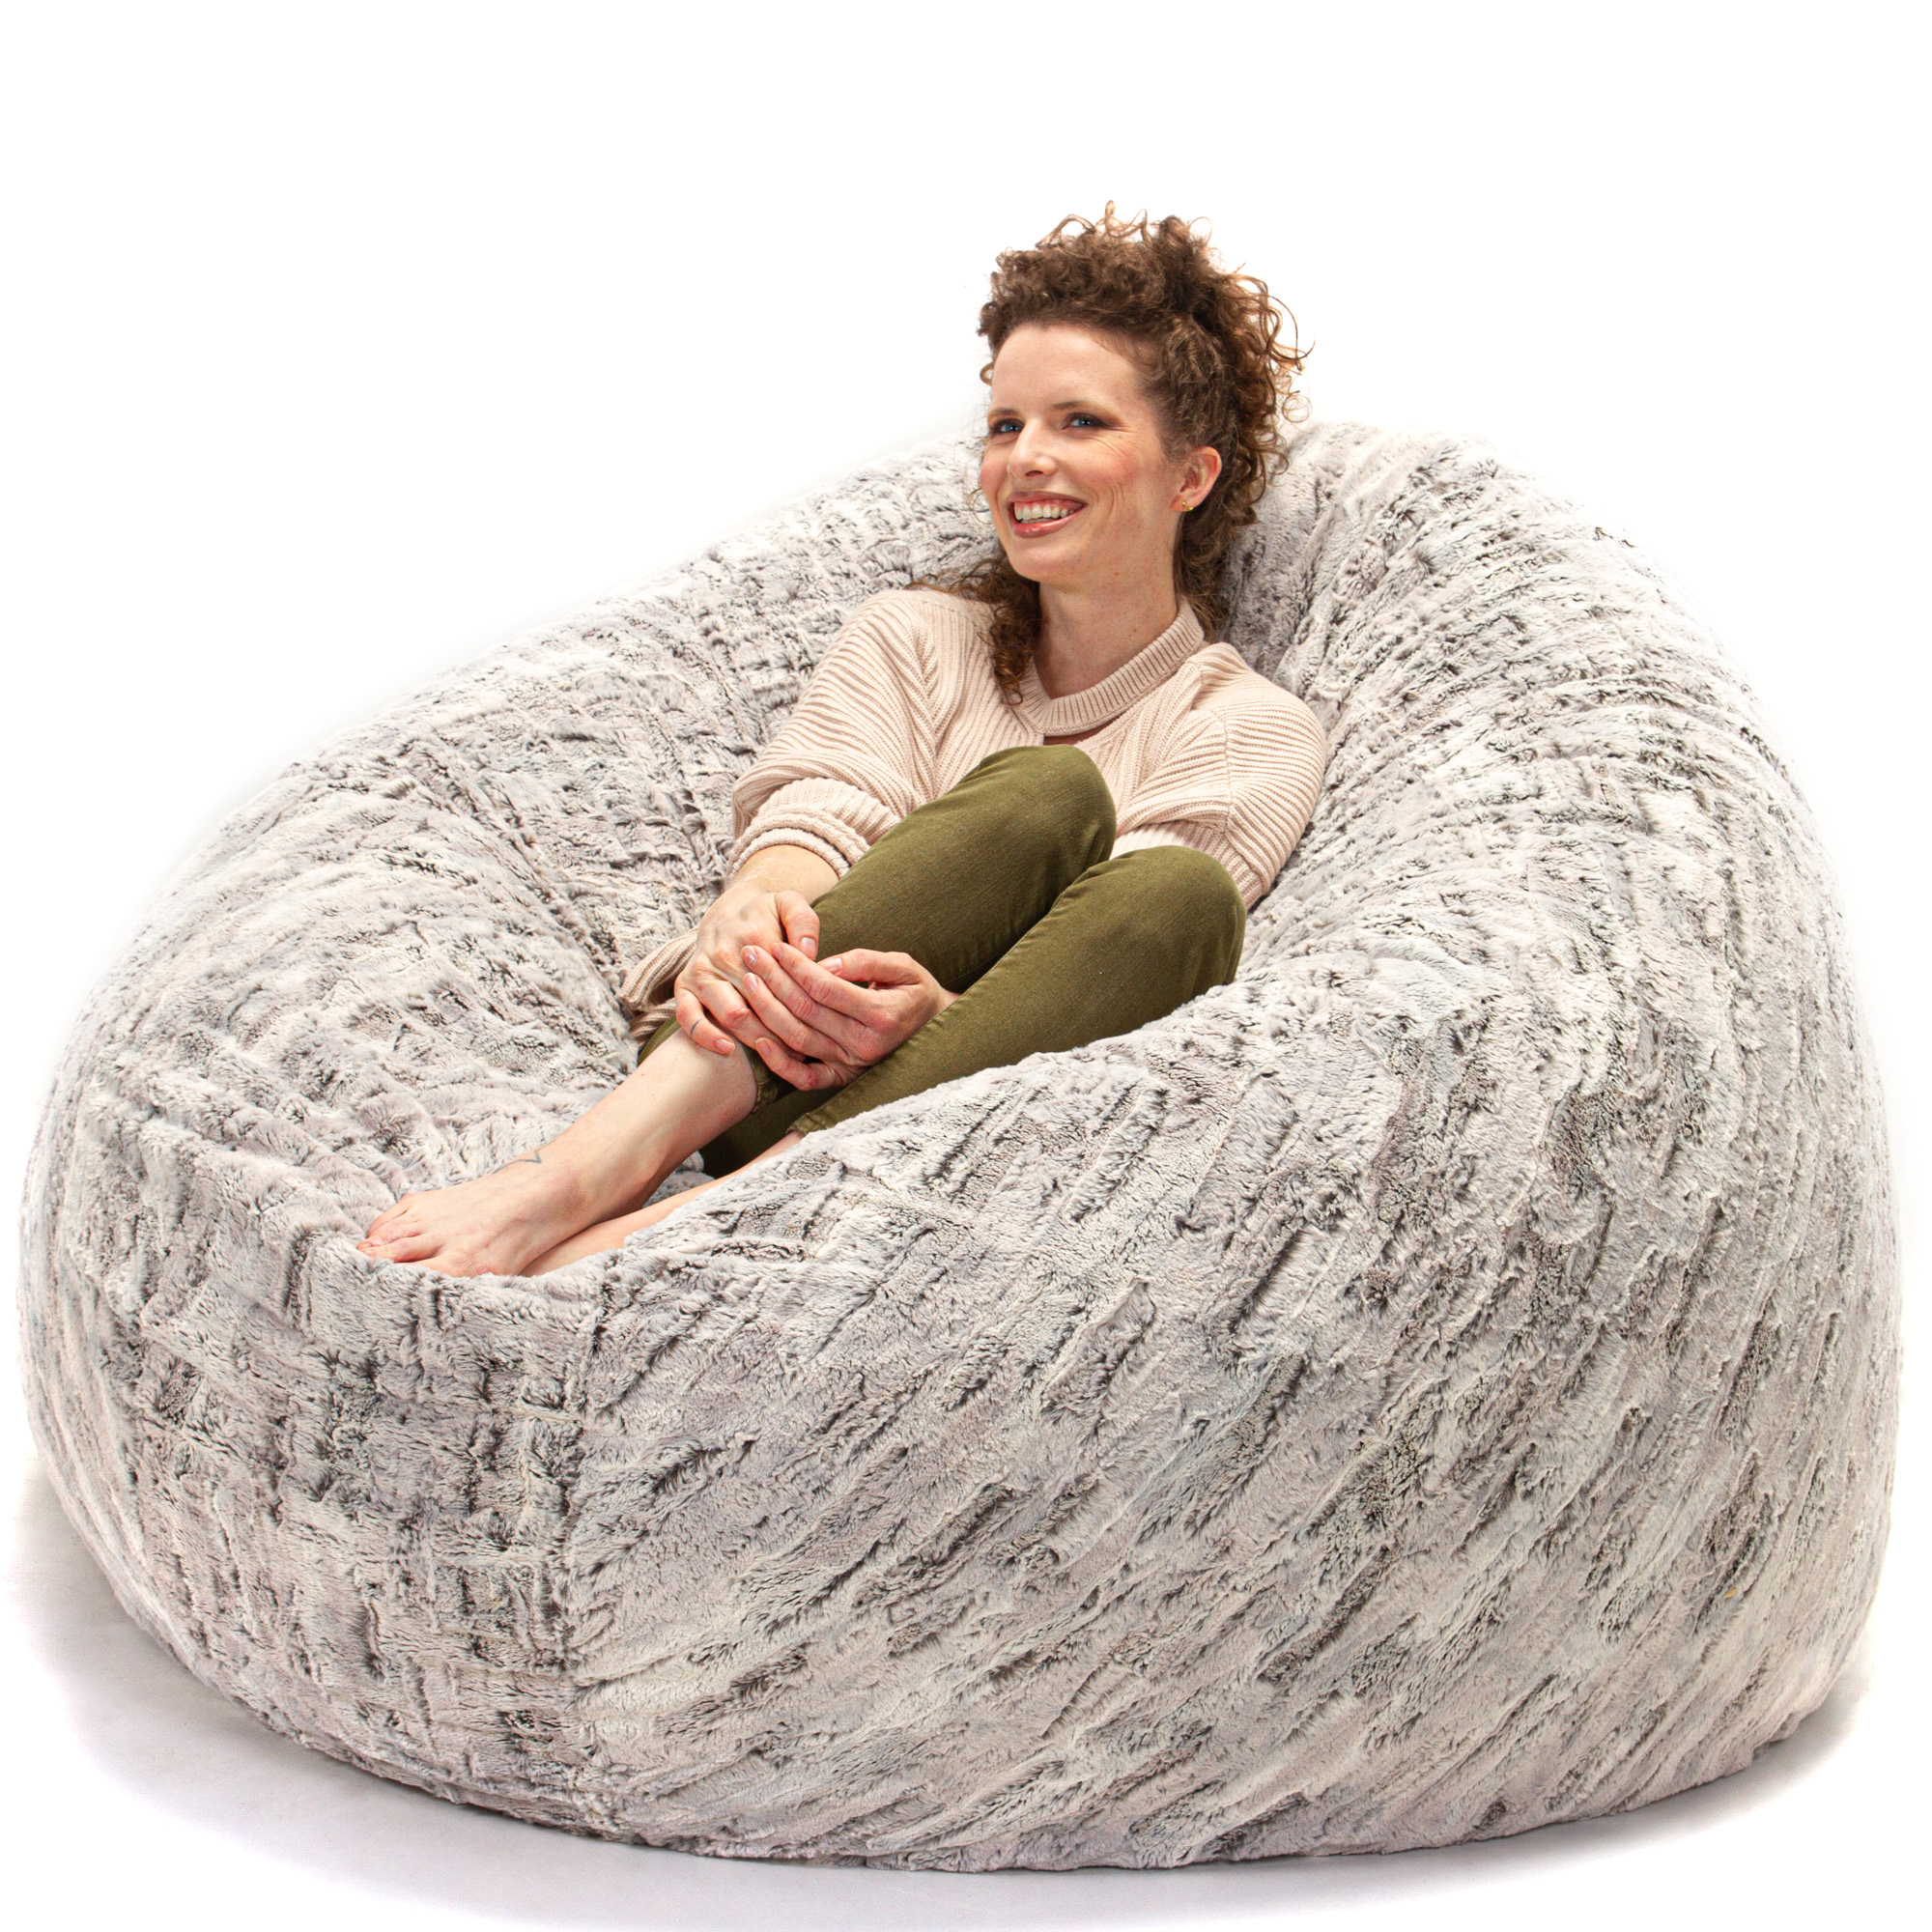 Oversized Bean Bag Chairs Adults : The 13 Best Bean Bag Chairs For Adults Improb \/ Bean bag